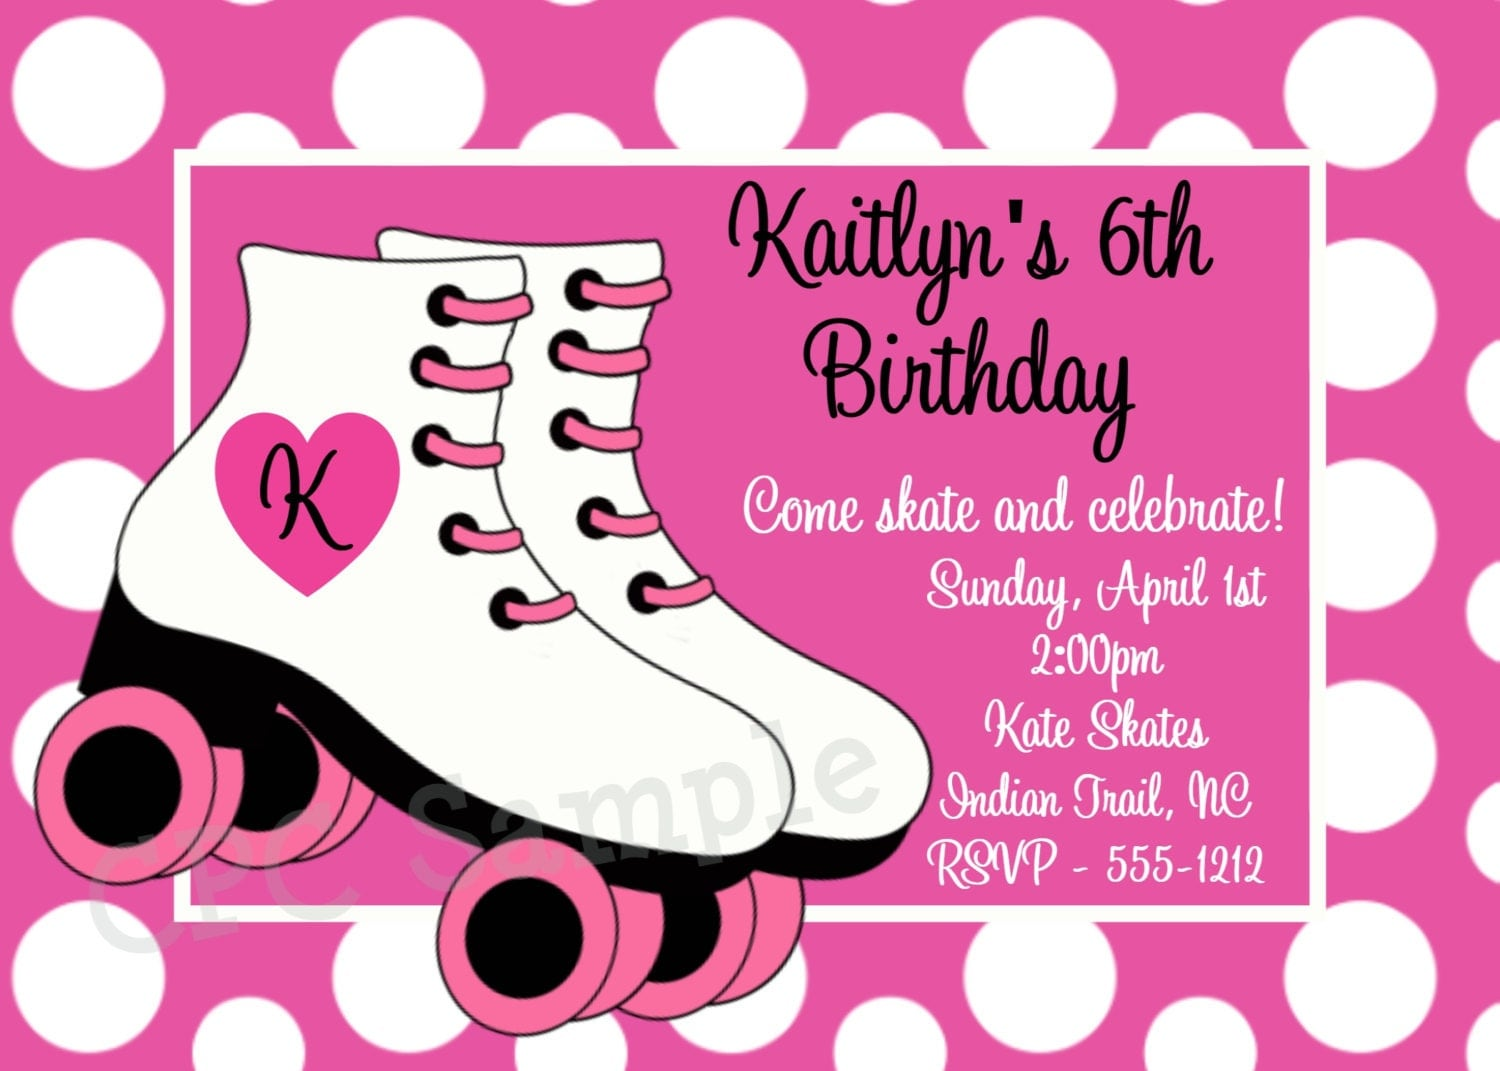 Roller Skating Birthday Party Invitations could be nice ideas for your invitation template